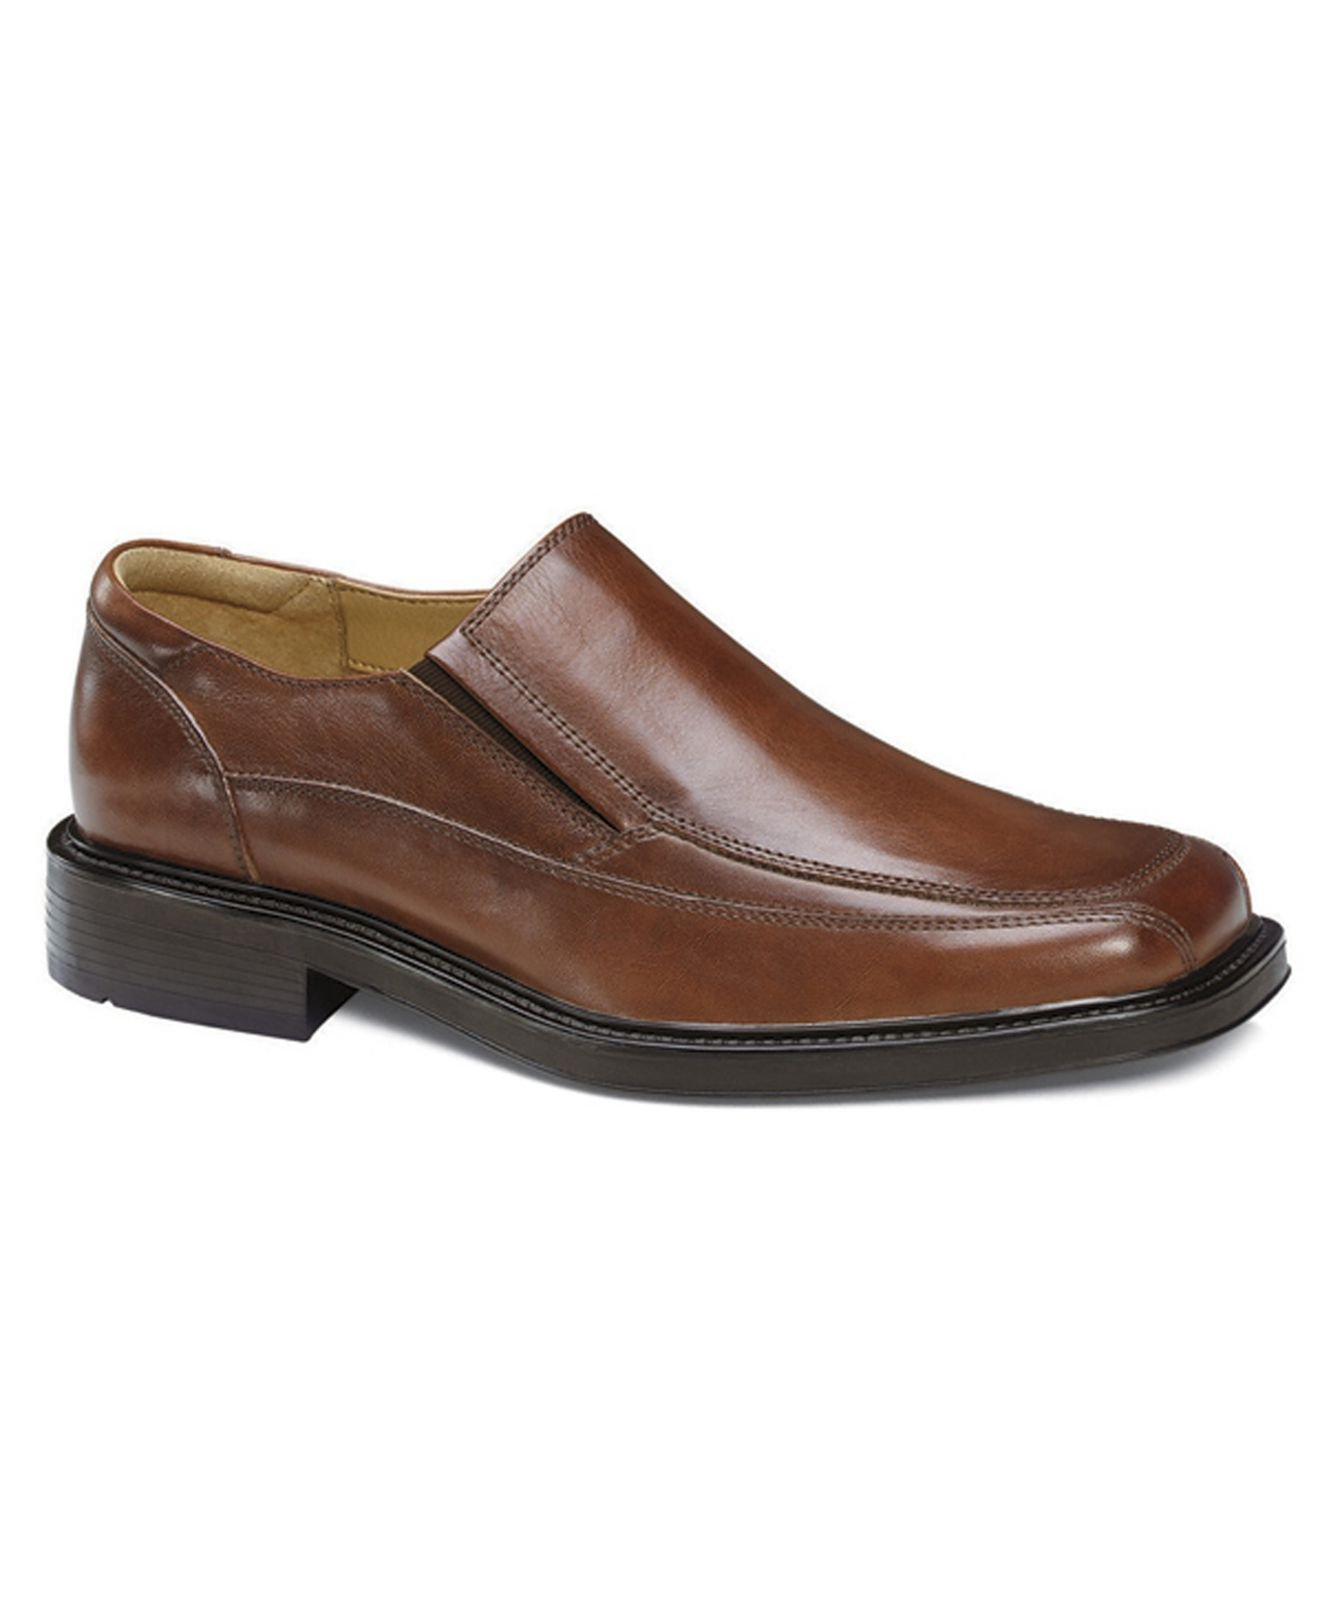 Buy Dockers Shoes